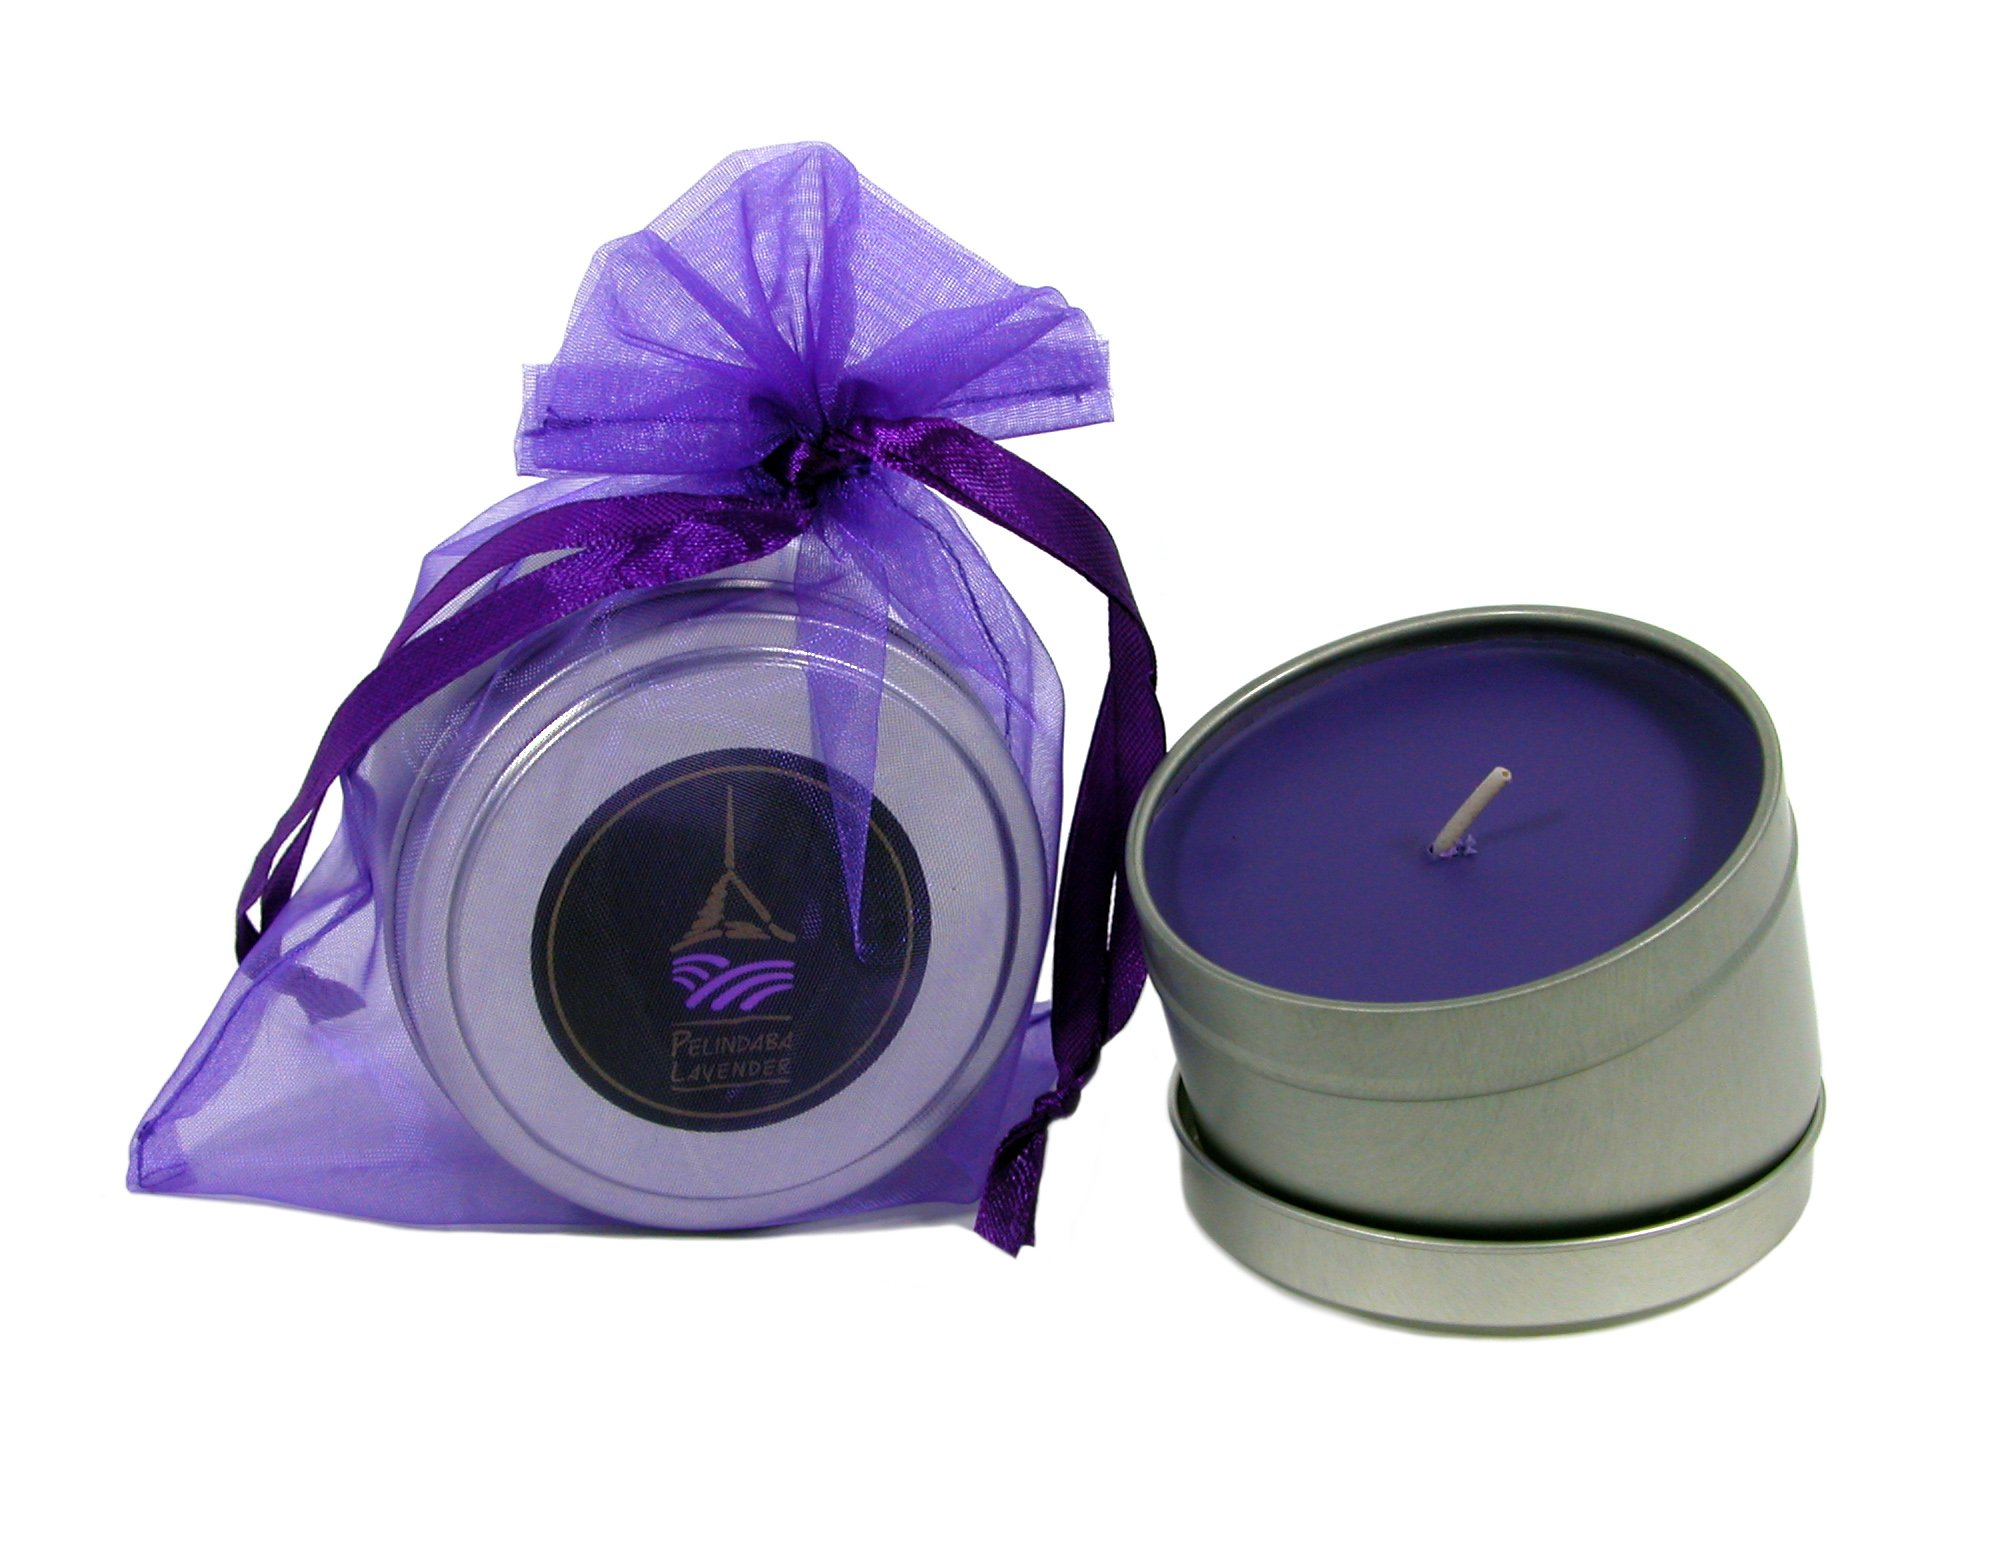 Pelindaba Lavender Aromatherapy Tin Candle - Soy & 100% Organic Lavender Essential Oil